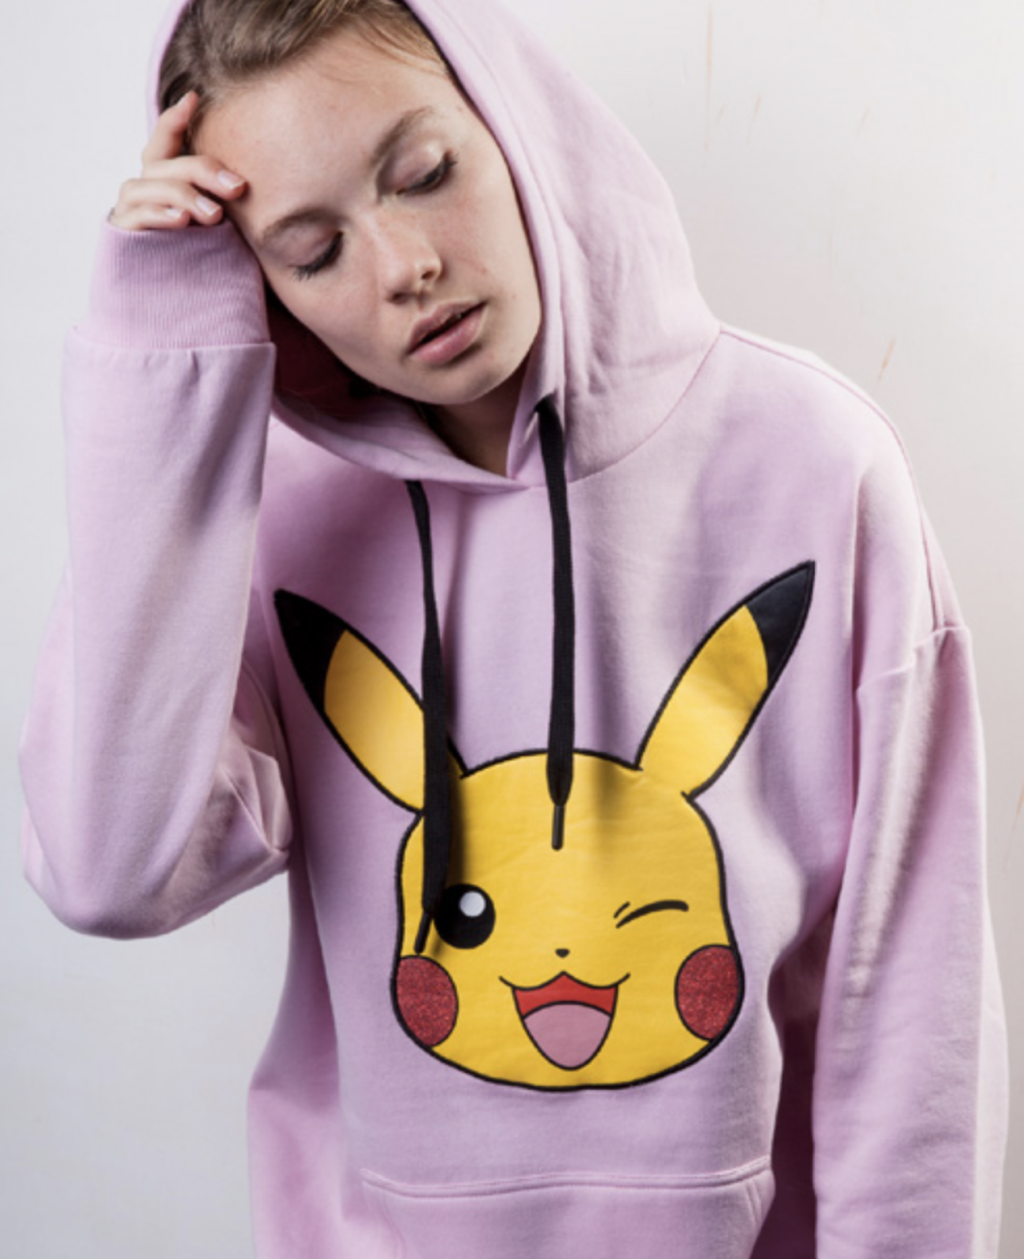 POKEMON - Women's Sweatshirt - Pikachu (L)_1